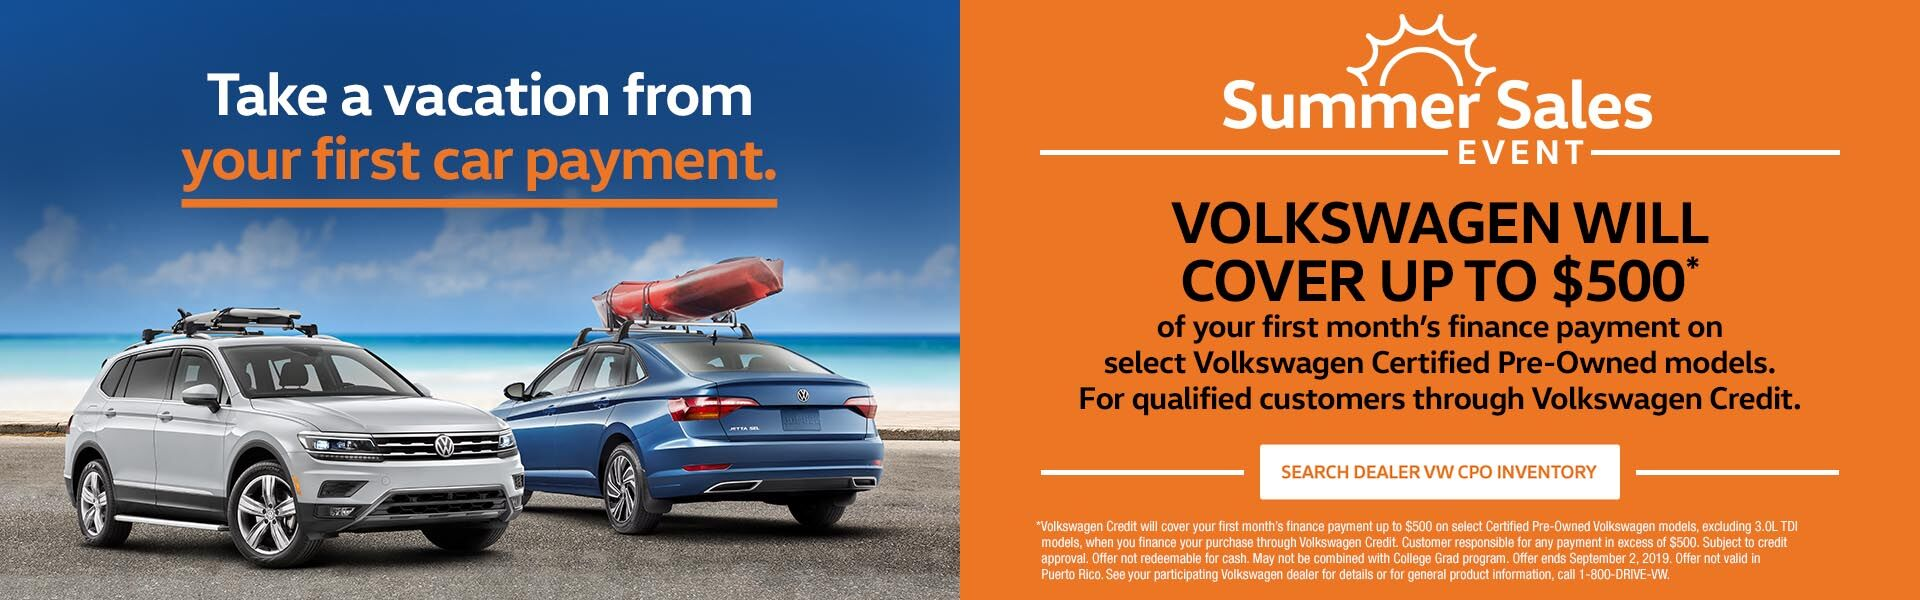 Volkswagen Summer Sales Event